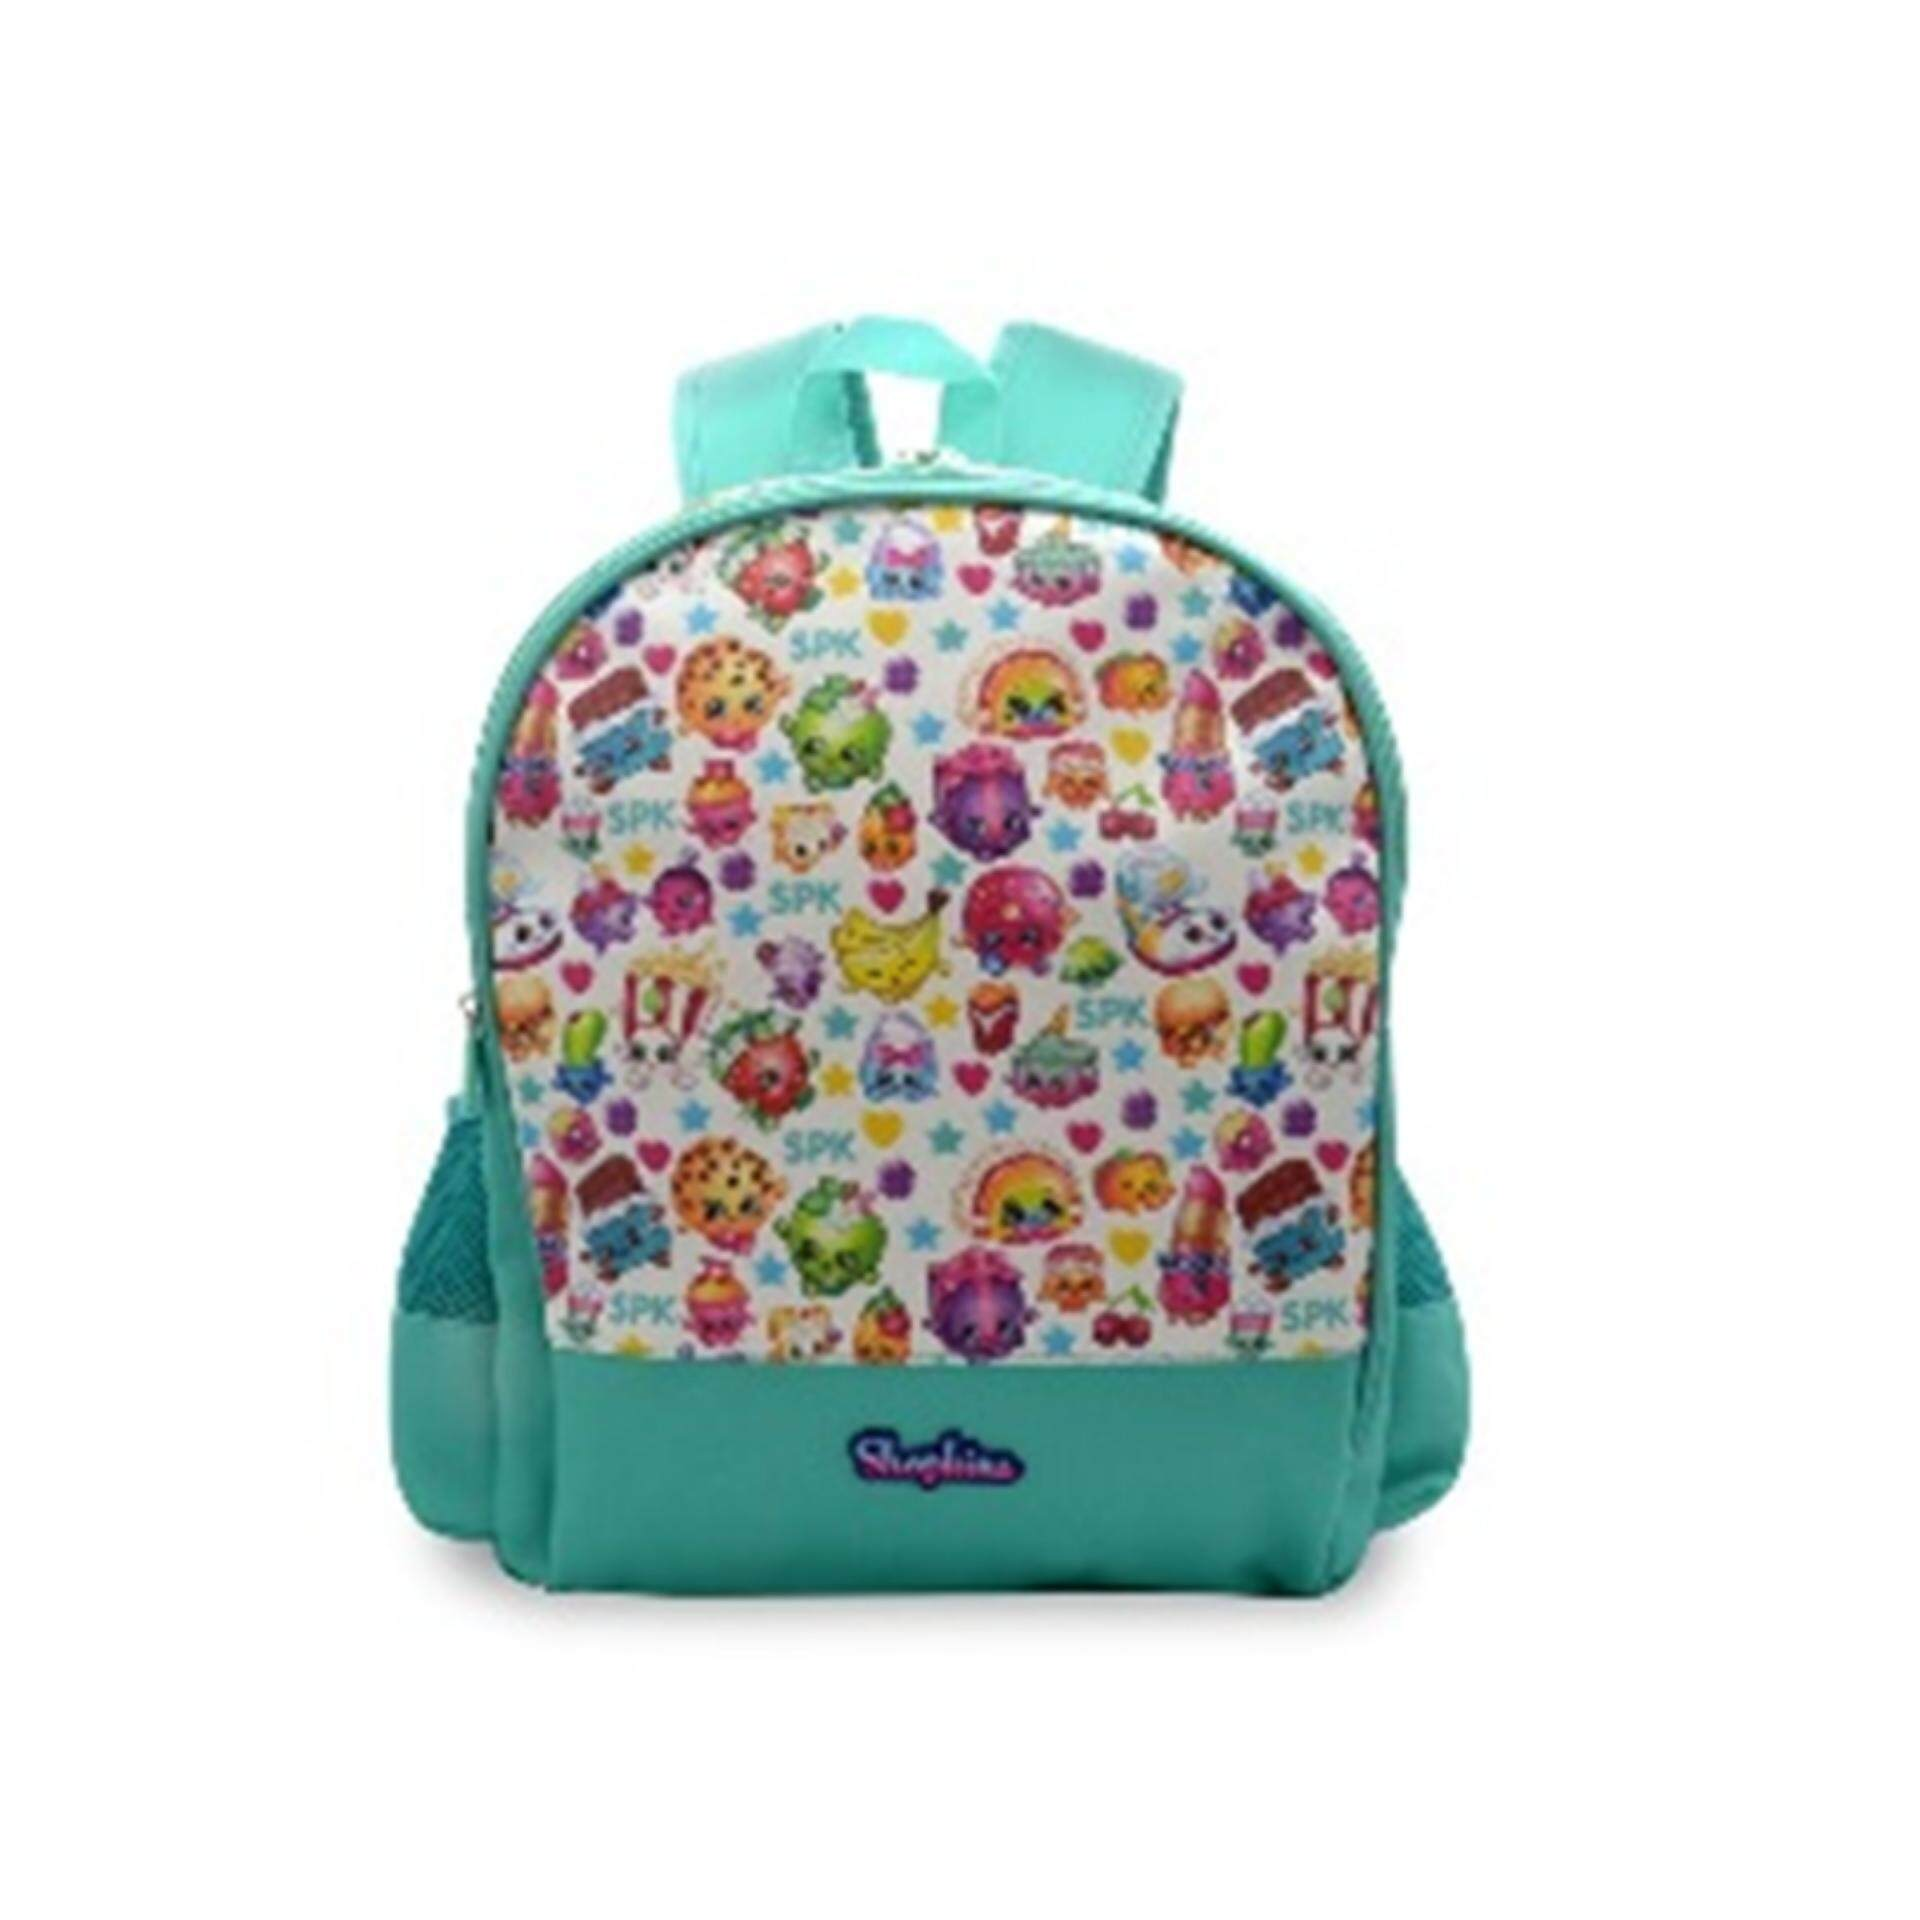 Shopkins Backpack School Bag 16 Inches - Light Blue Colour 0320dbbde6100